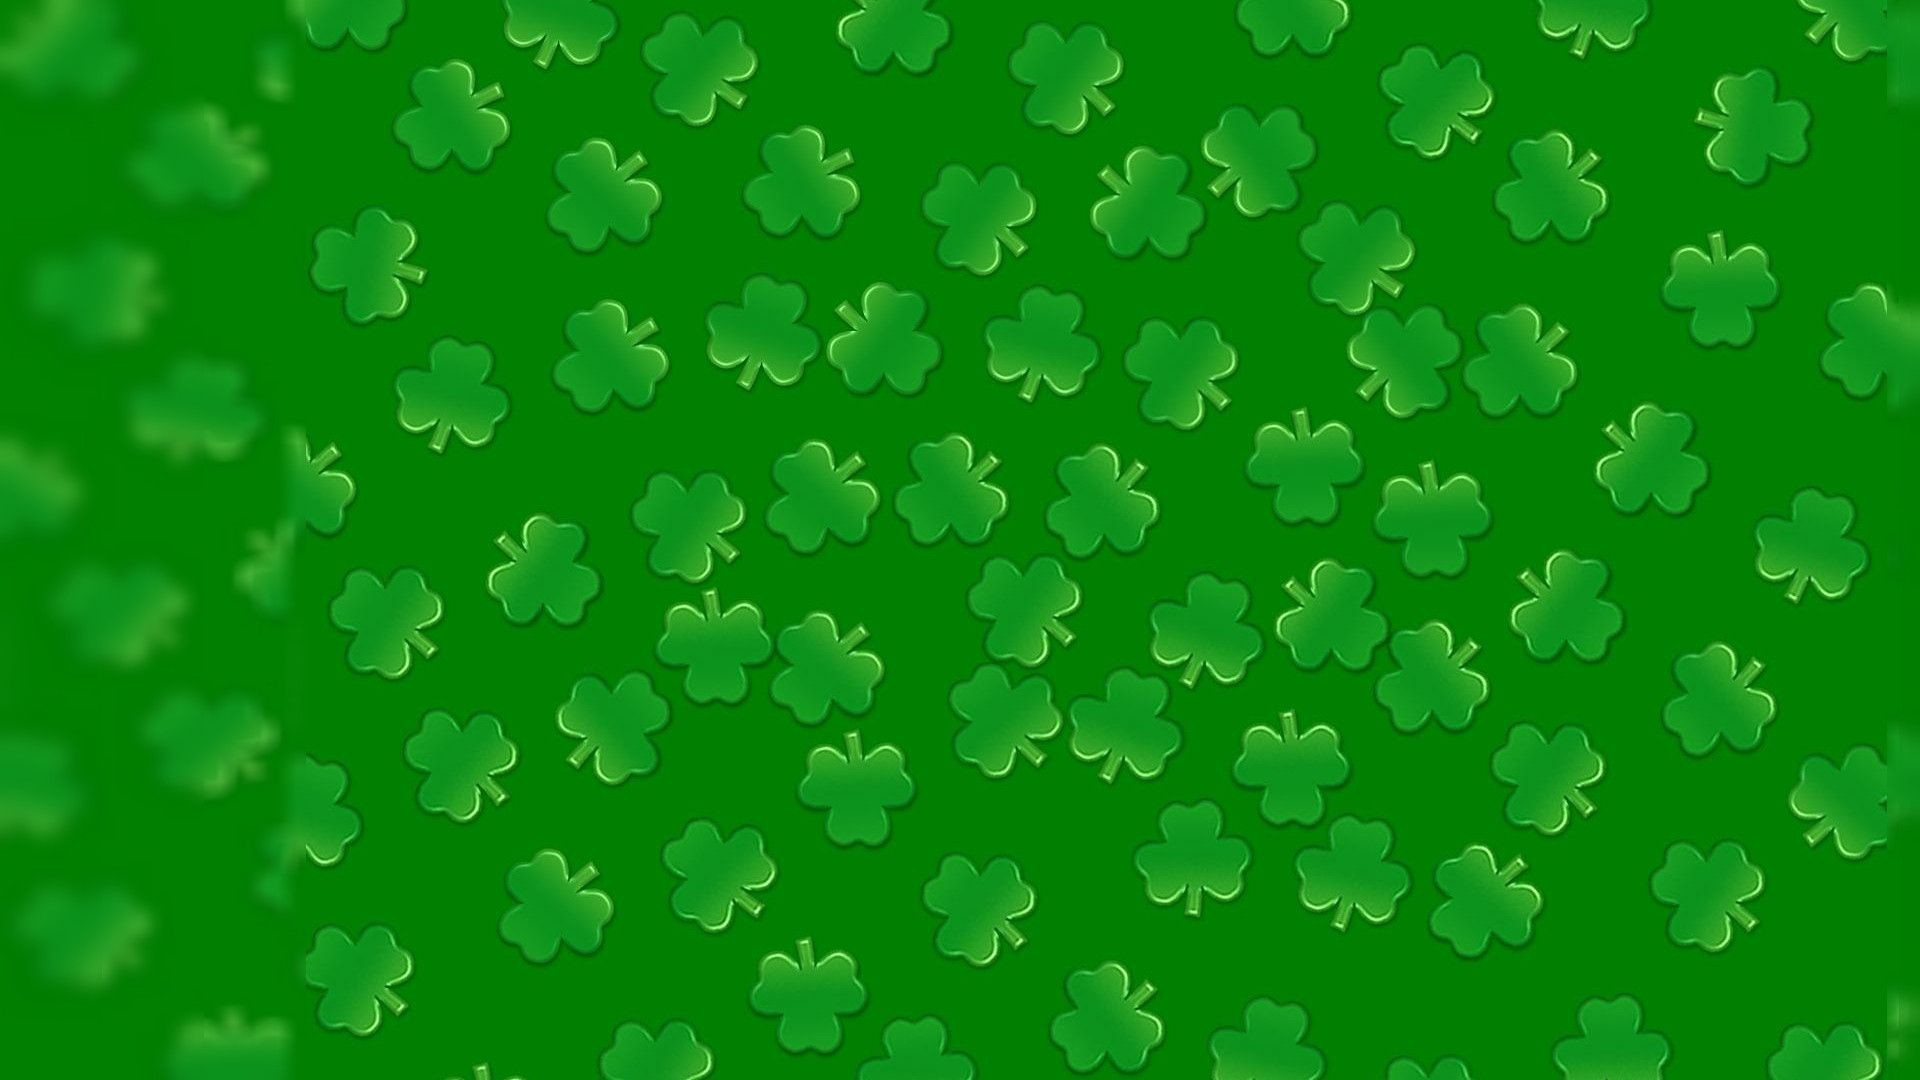 1920x1080 Backgrounds St Patricks Day Desktop HD.